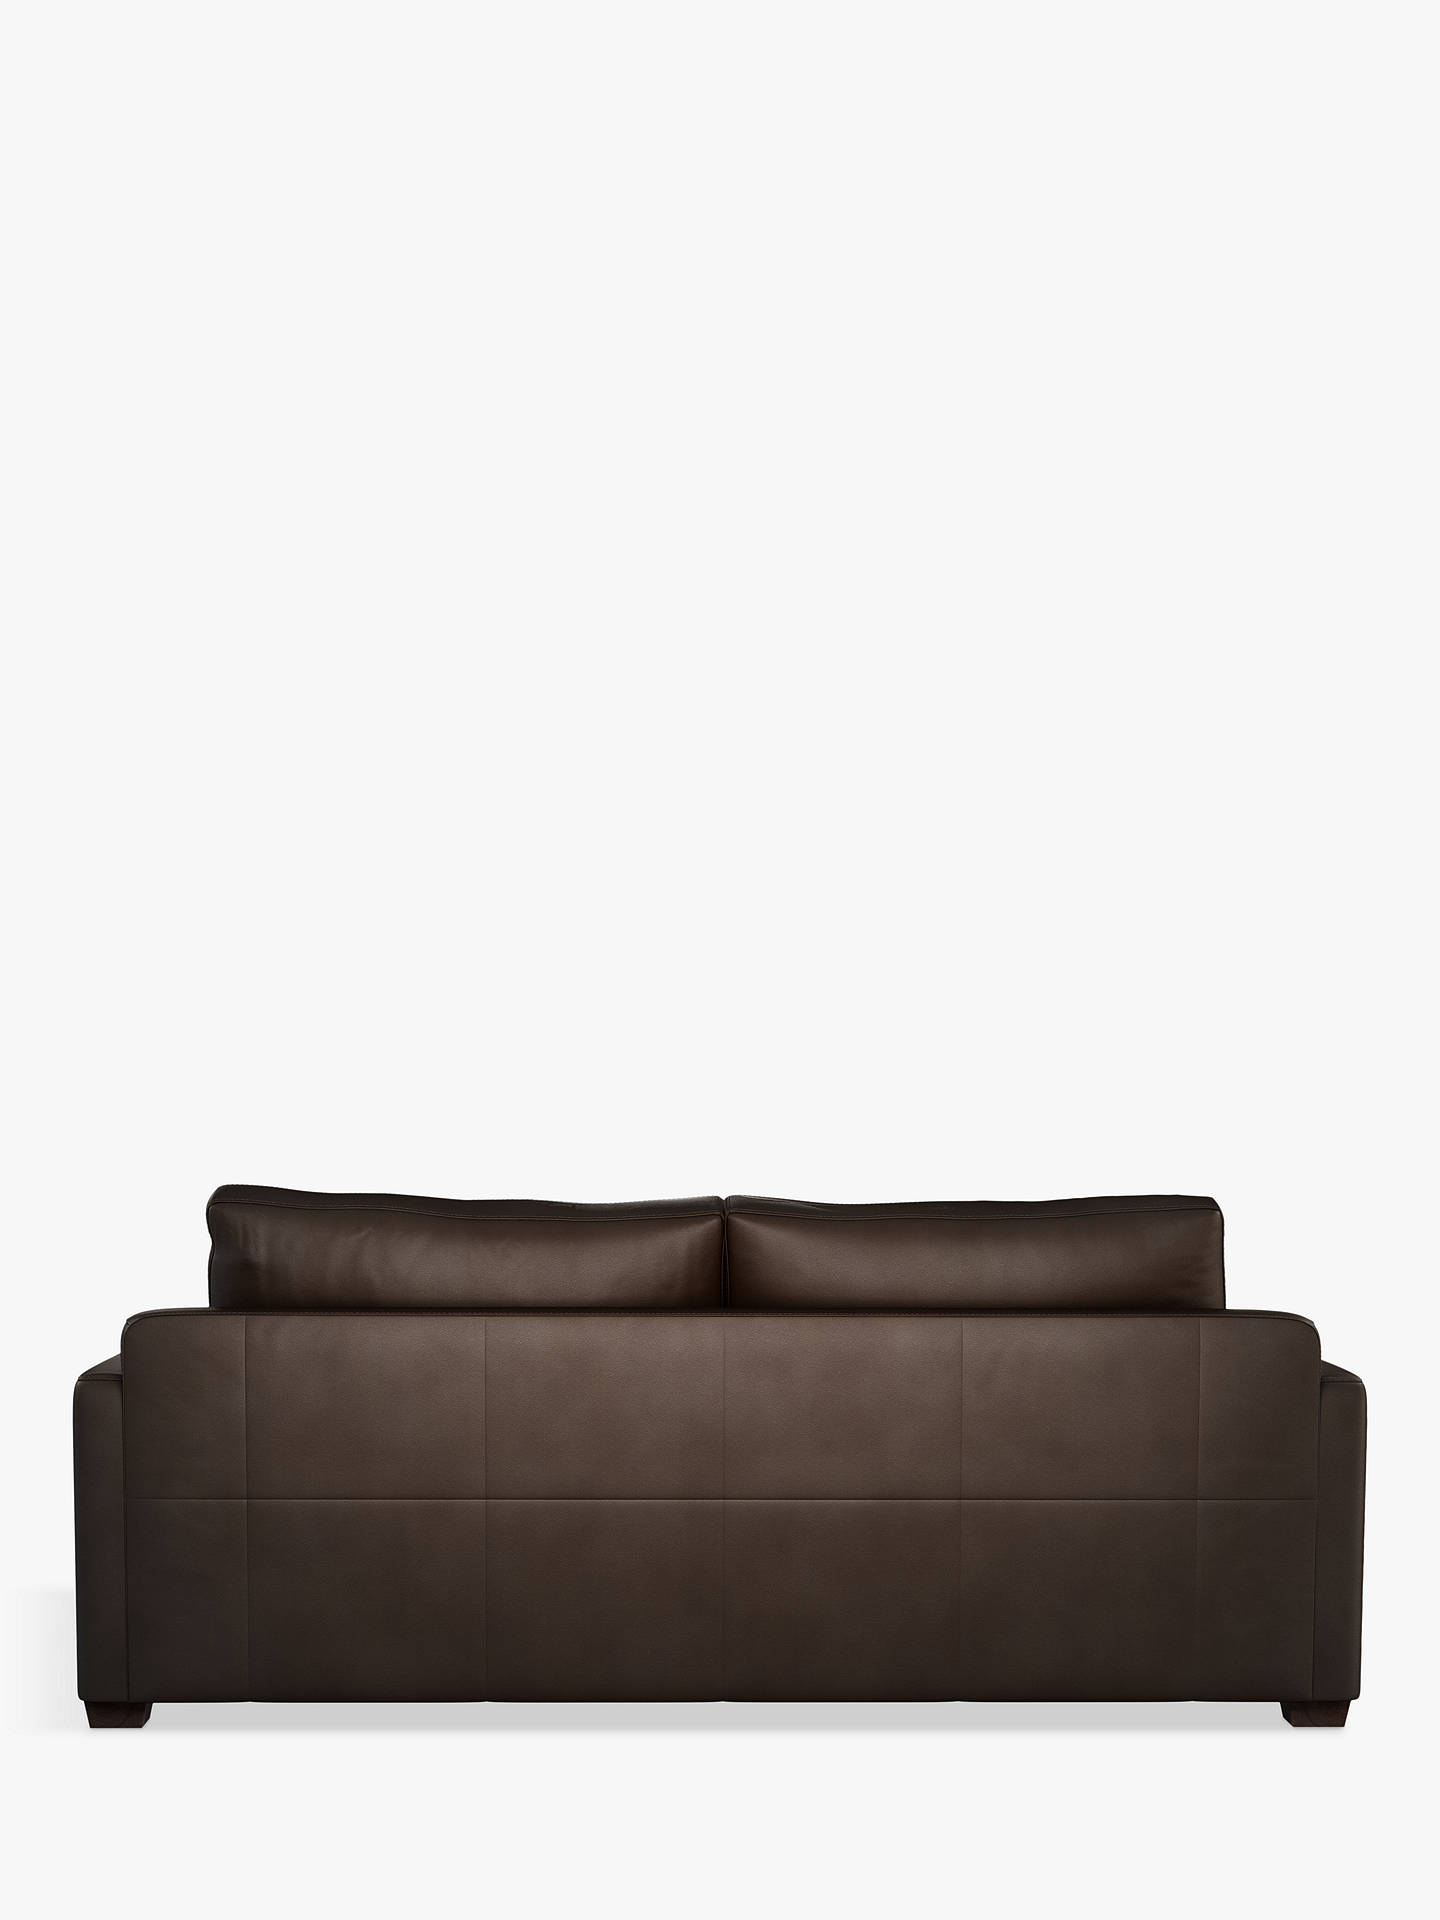 Buy John Lewis & Partners Tortona Leather Large 3 Seater Sofa, Nature Brown Online at johnlewis.com